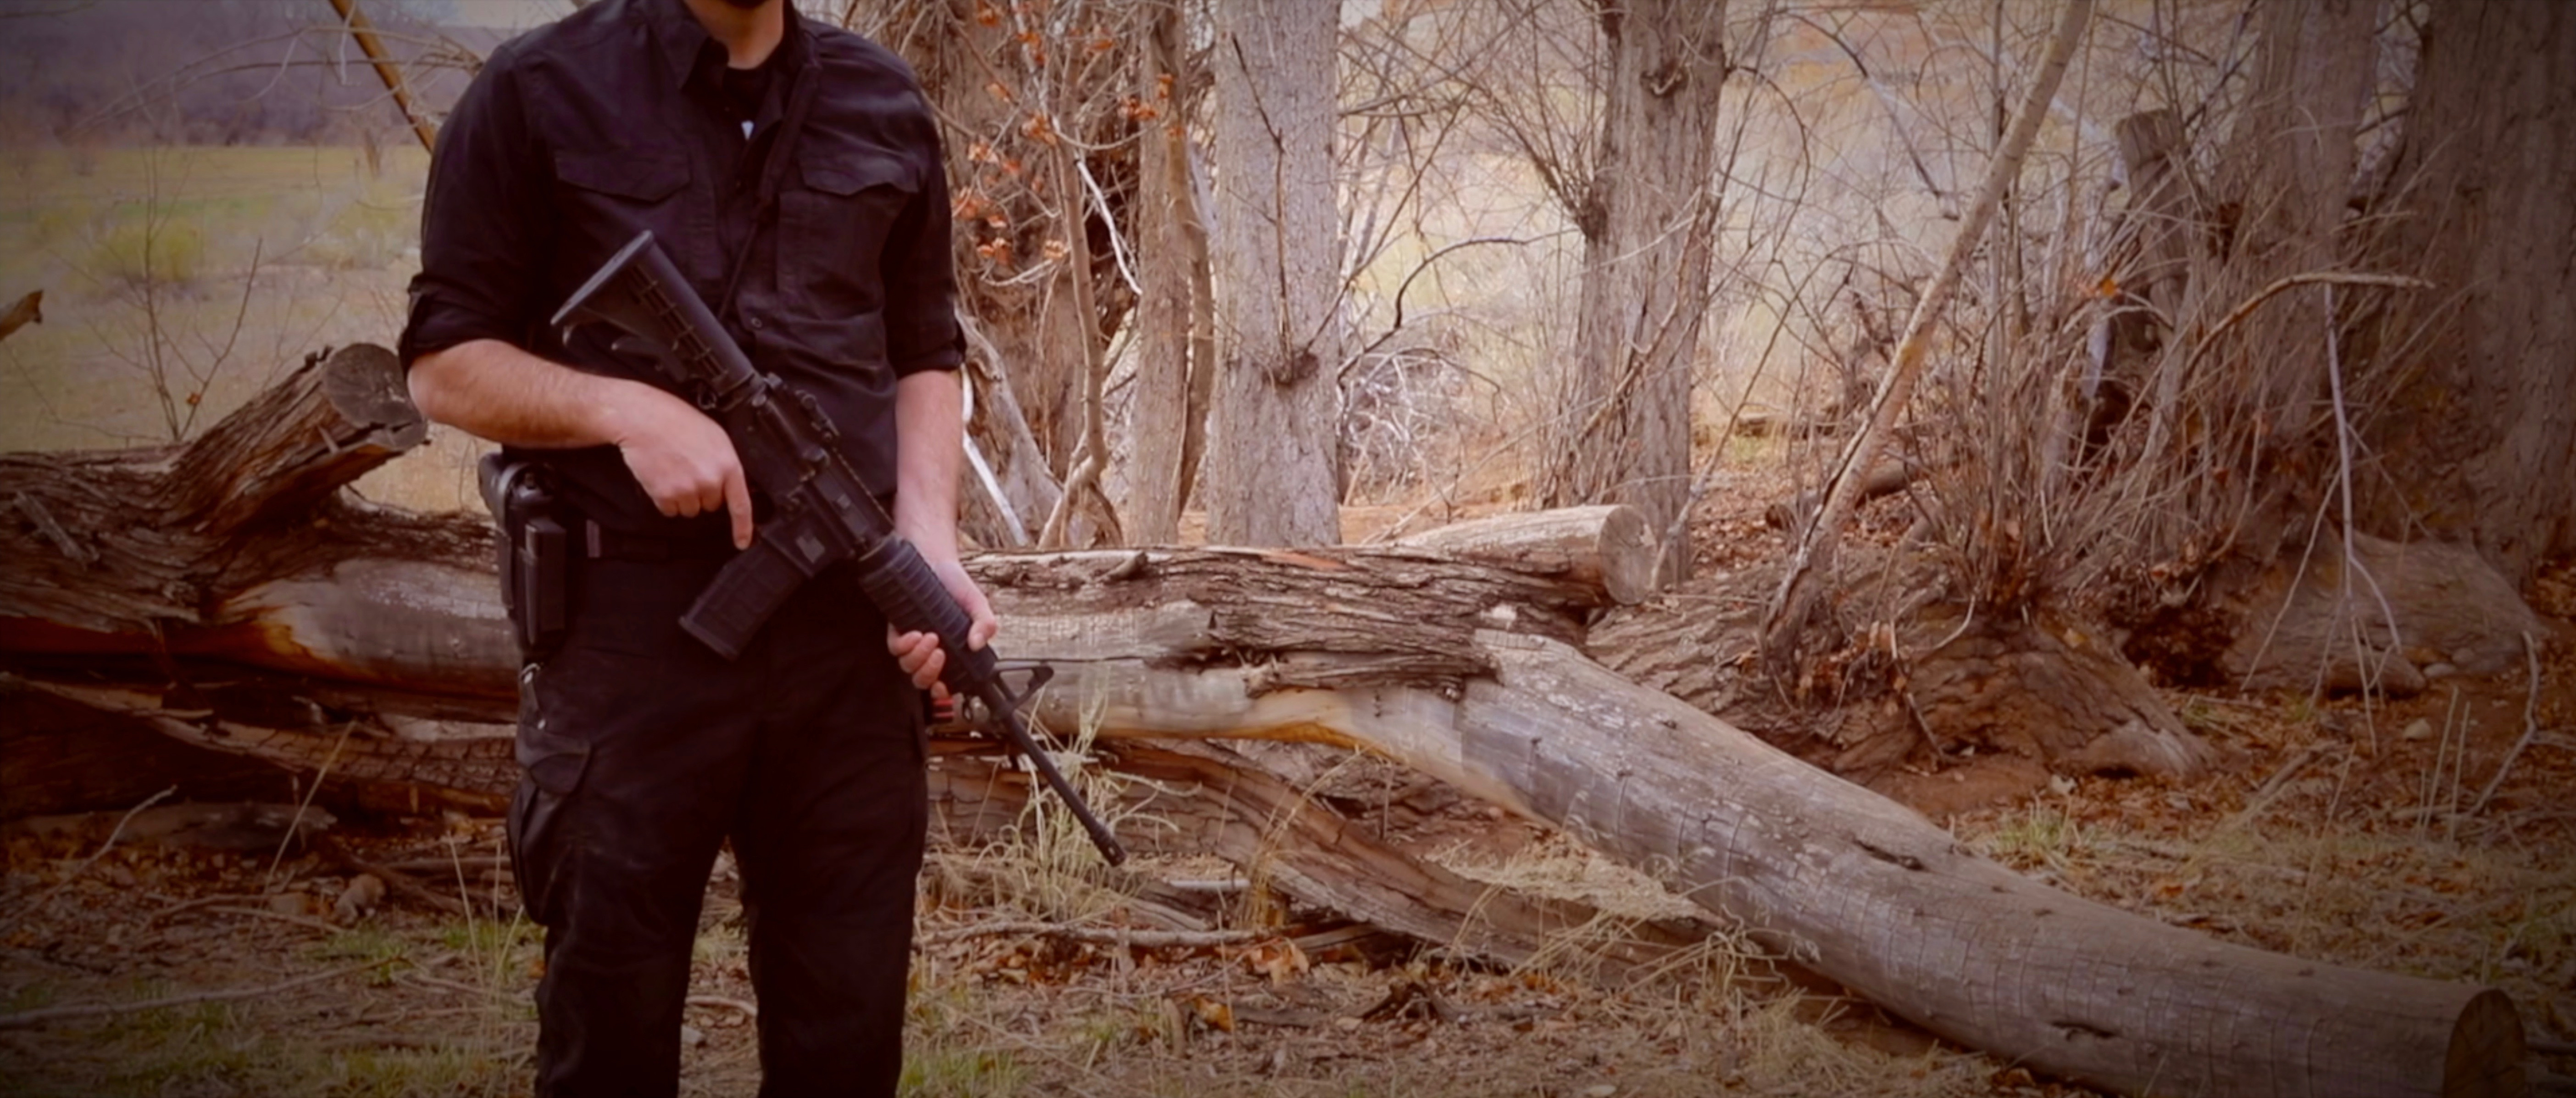 Hunt for the Skinwalker' Is the First Video Released From UFO